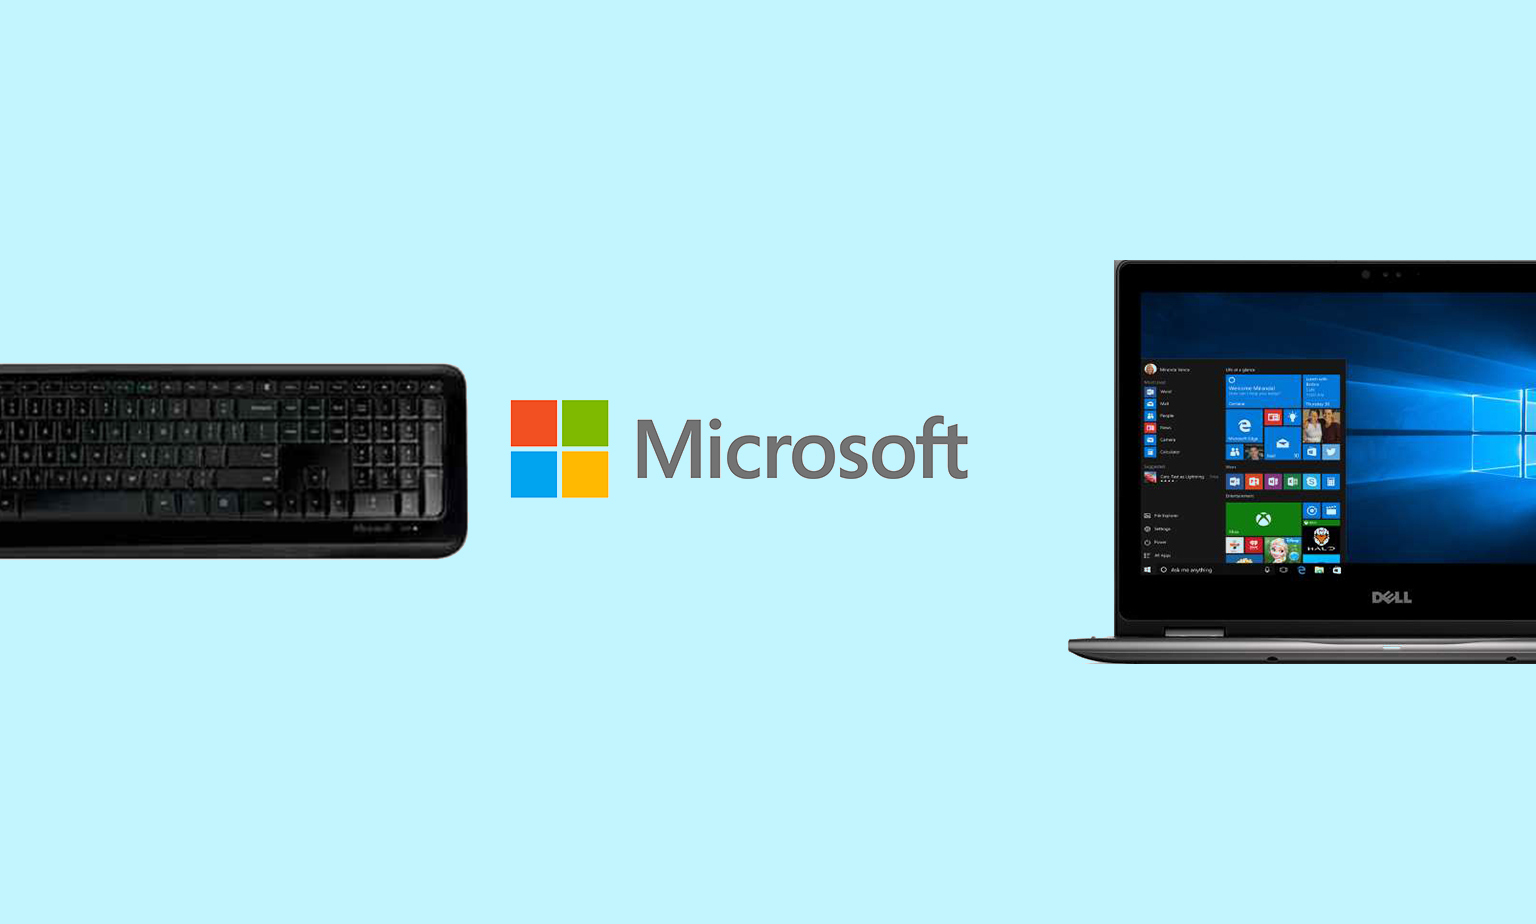 Up to 50% off selected devices at Microsoft